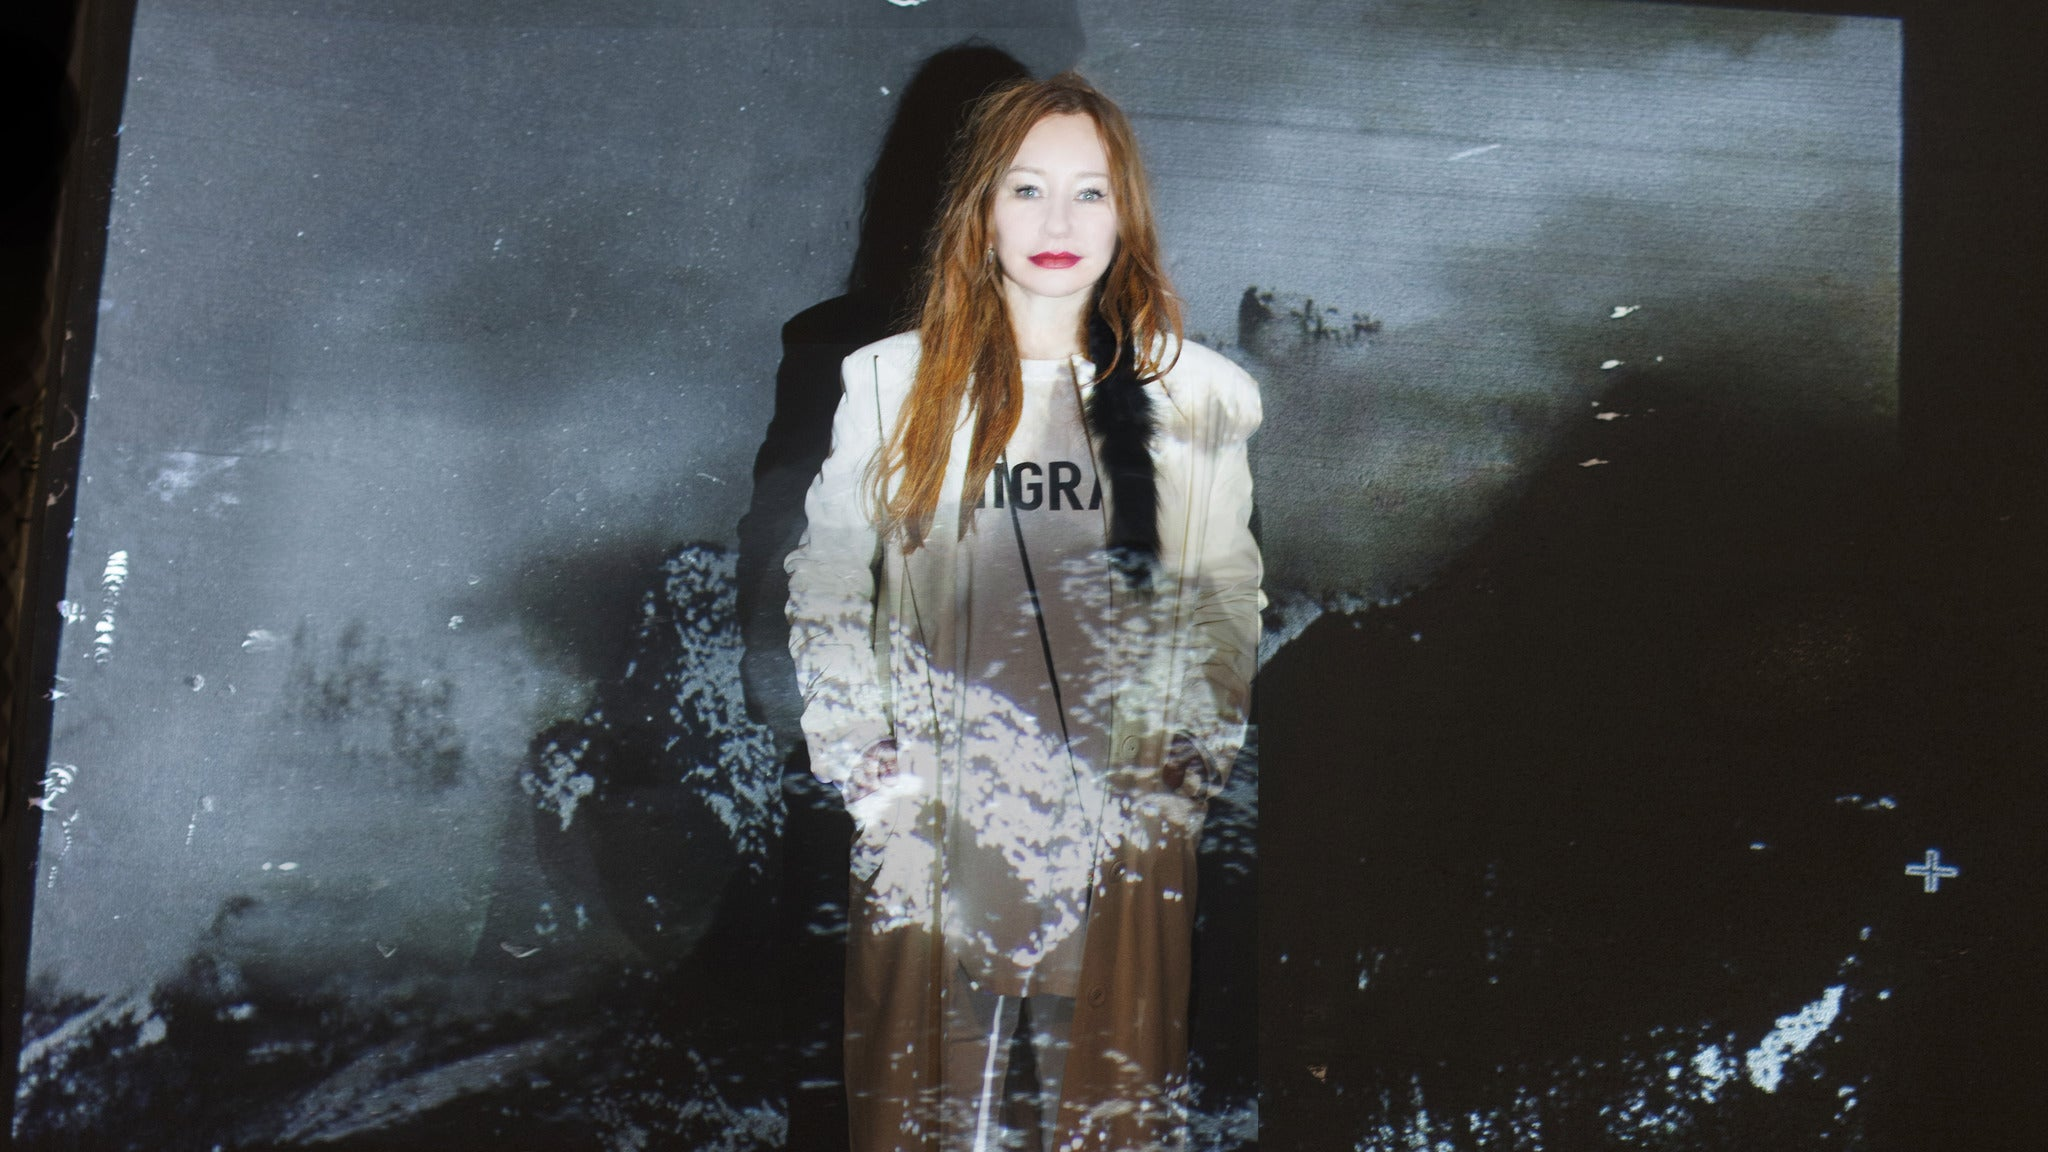 Tori Amos: Native Invader Tour at Paramount Theatre